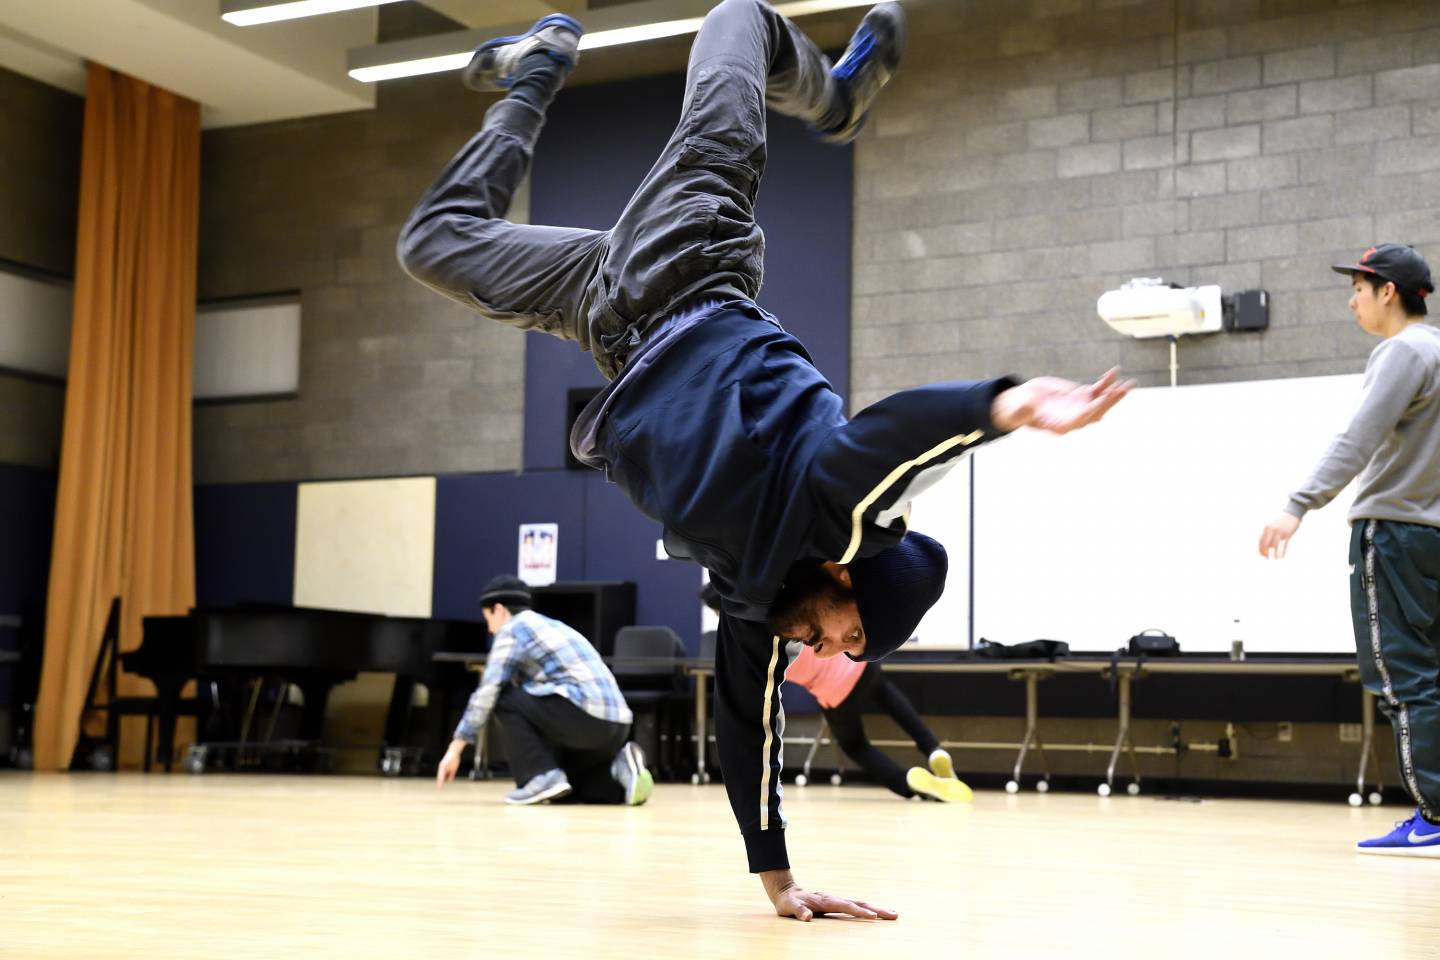 A breakdancer spins on his shoulders